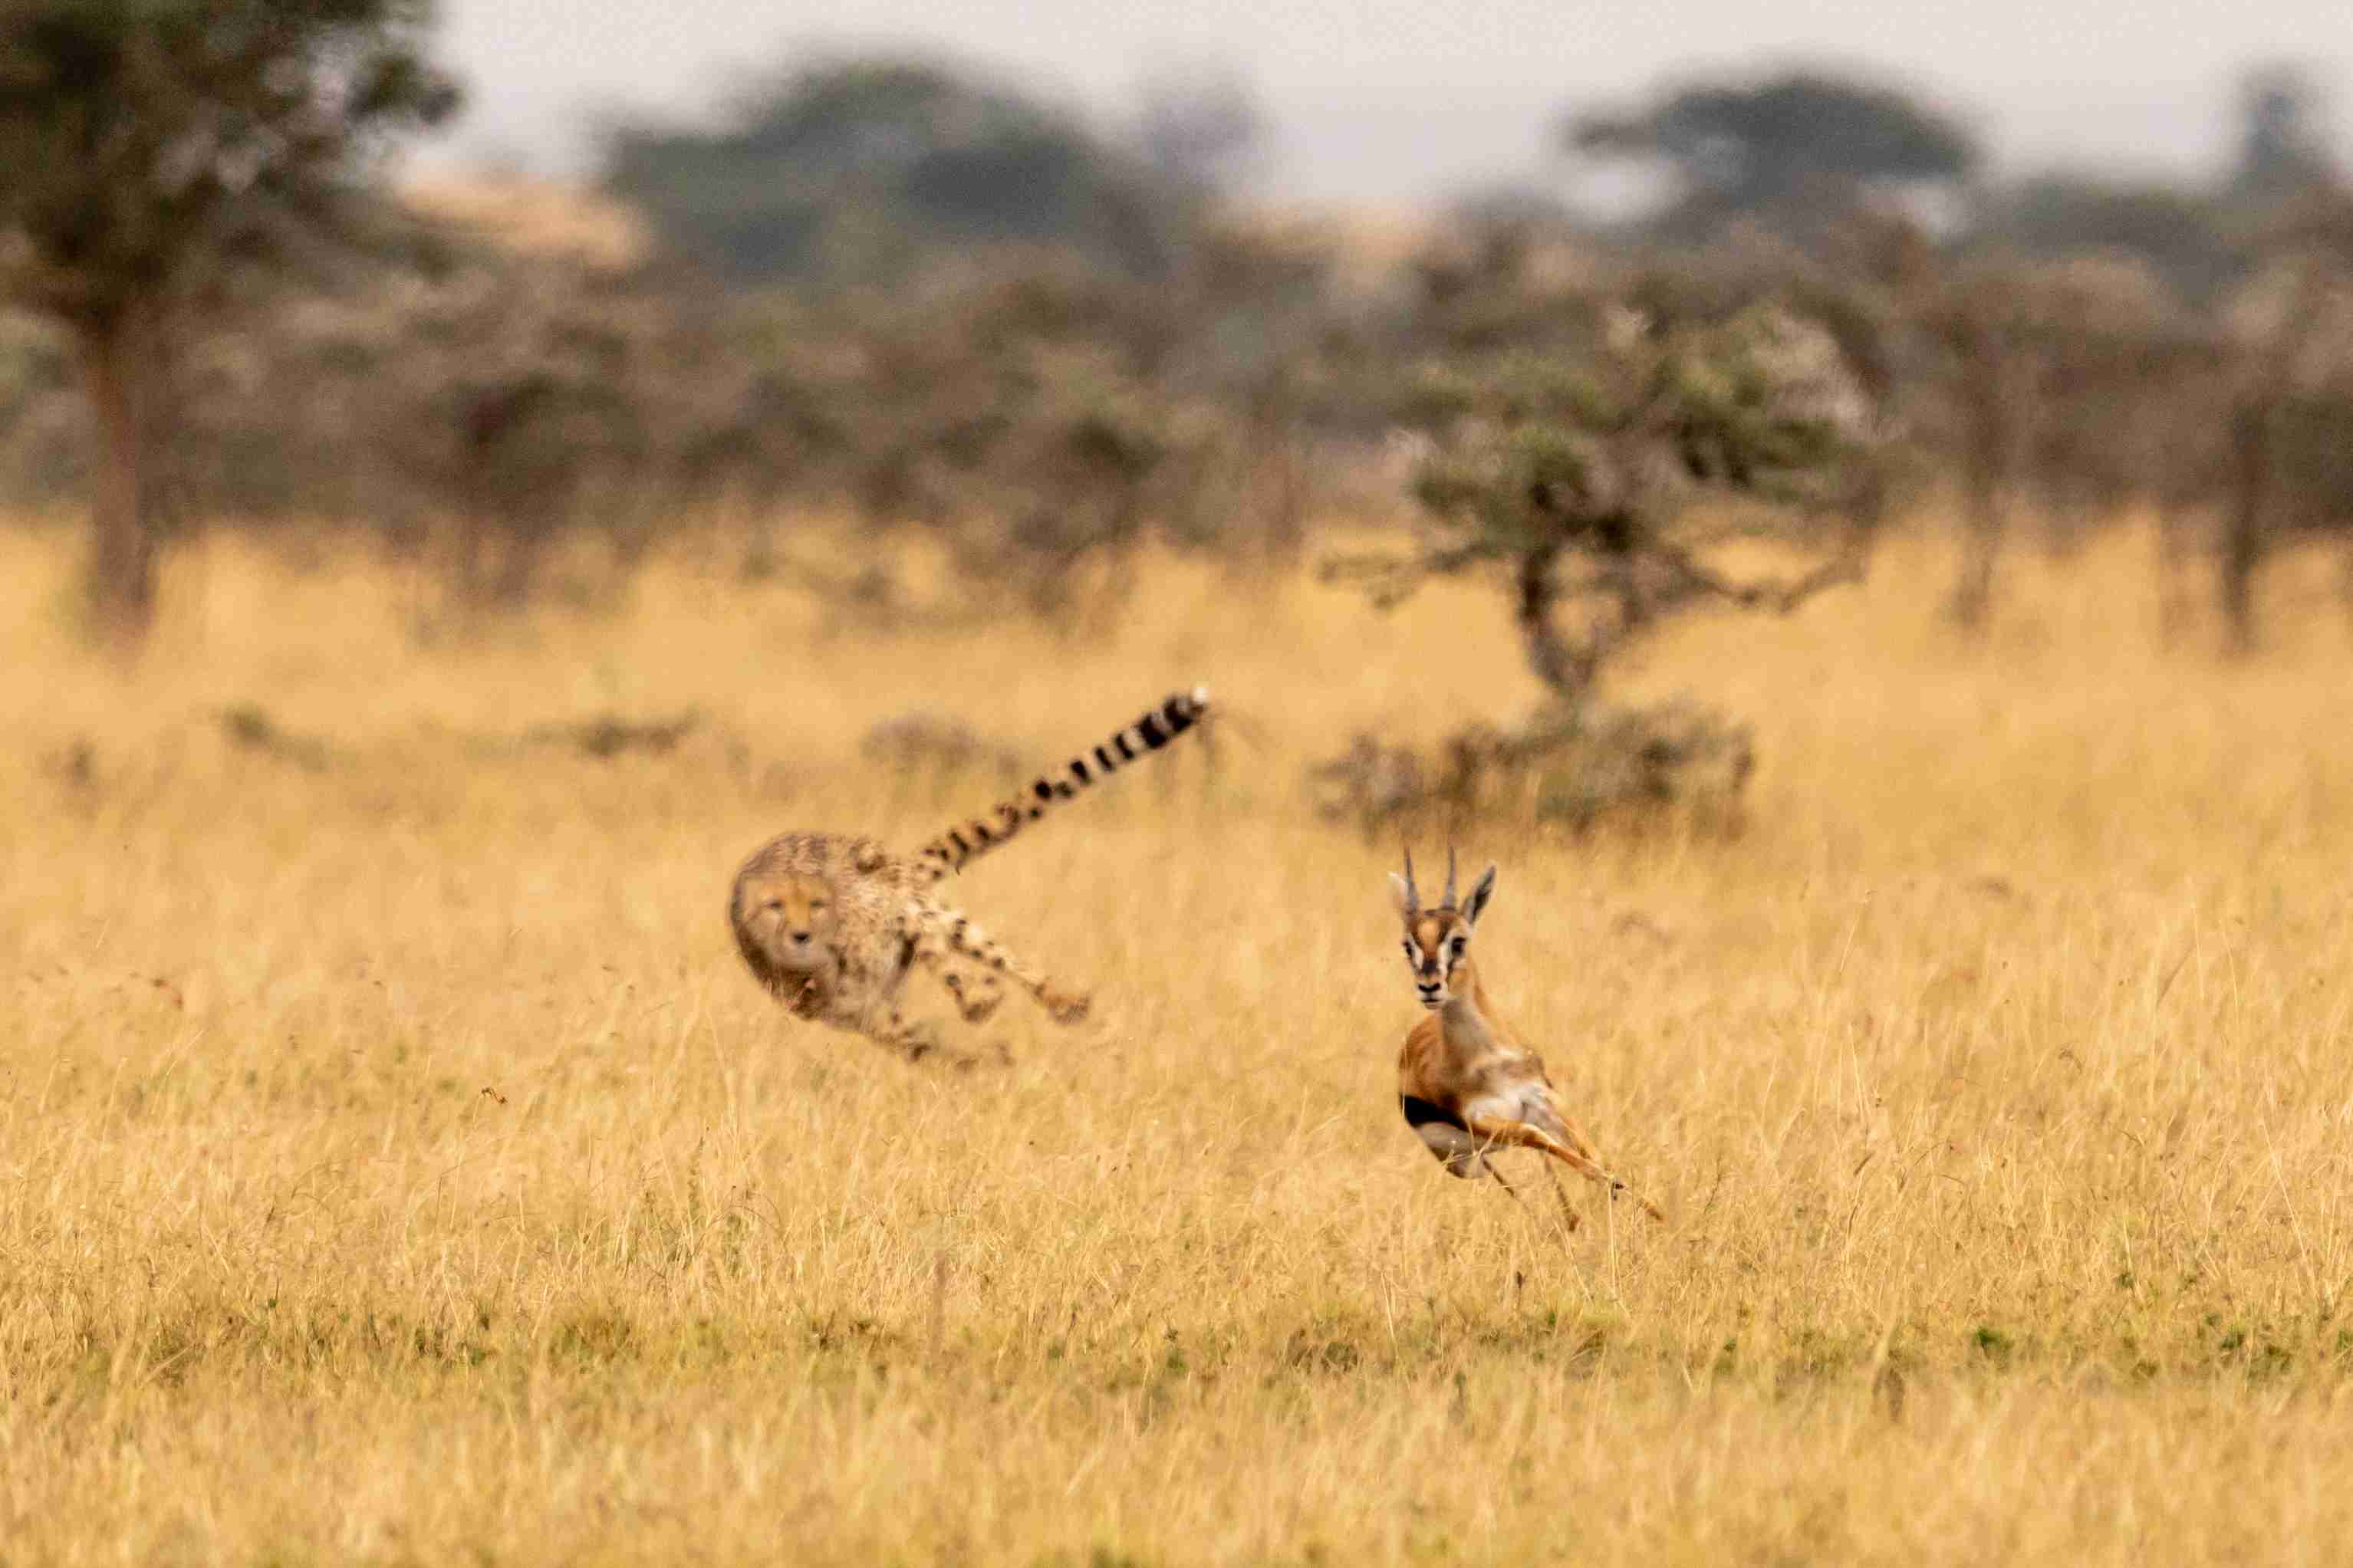 A cheetah uses its tail to help change direction while giving chase.